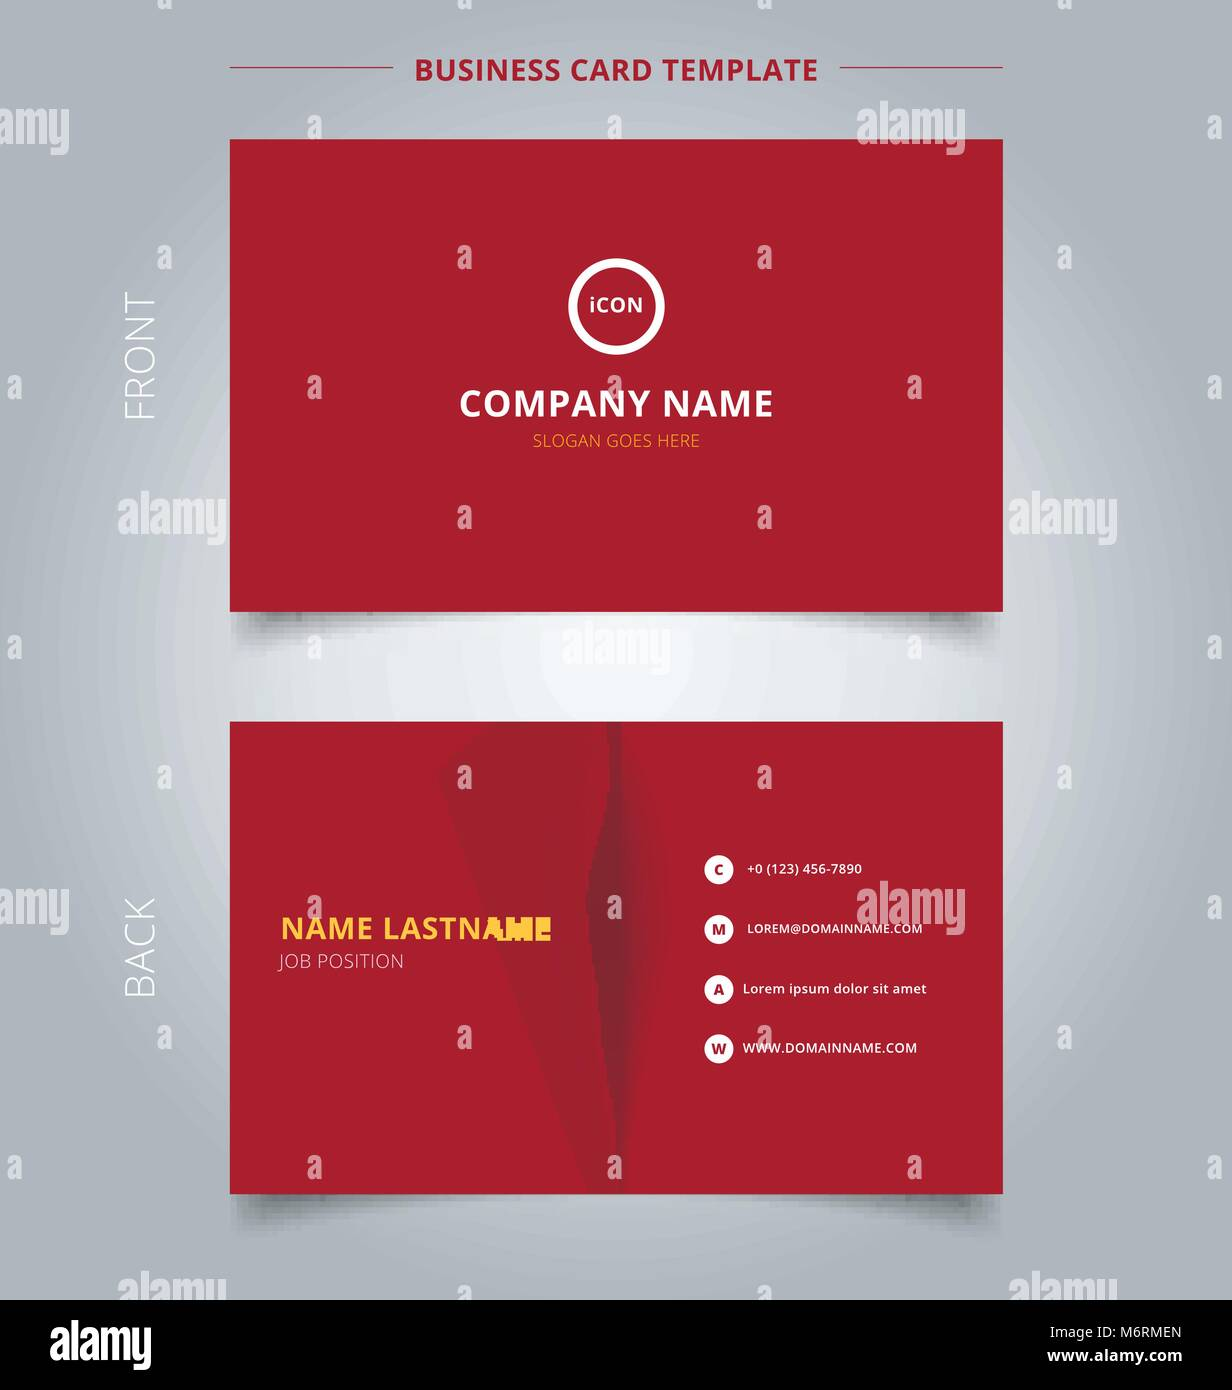 creative business card and name card template red color background